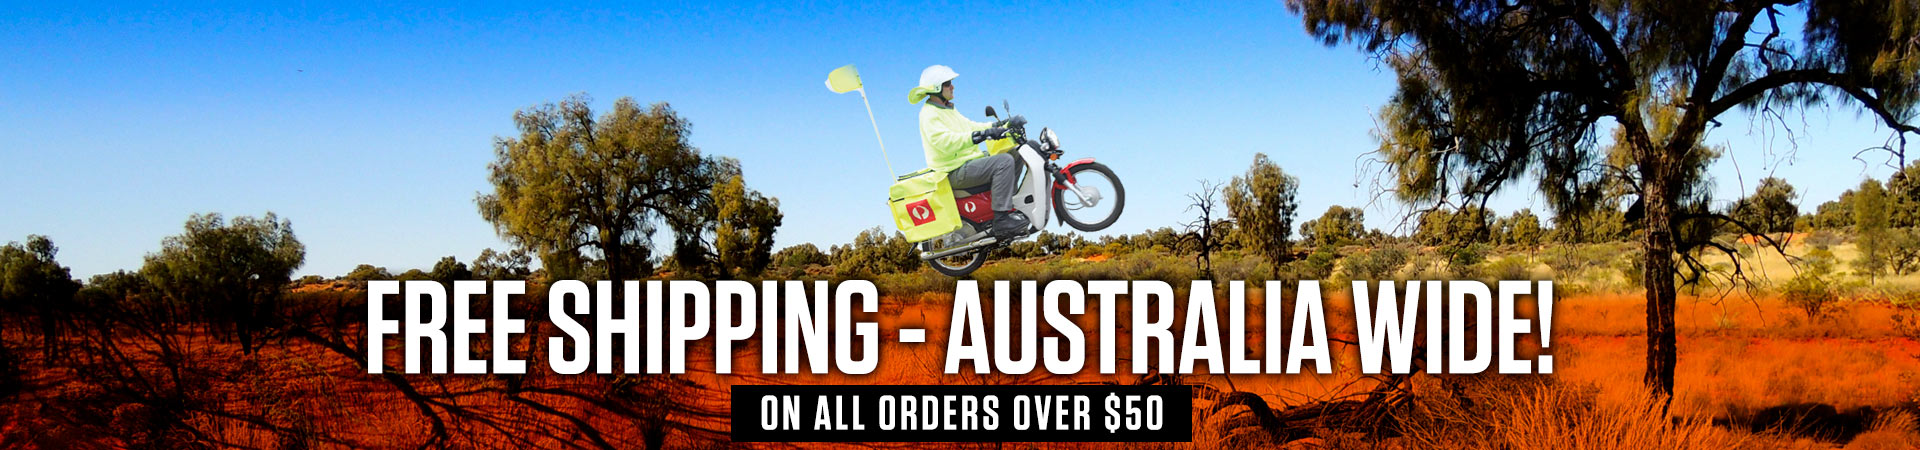 FREE SHIPPING - AUSTRALIA WIDE